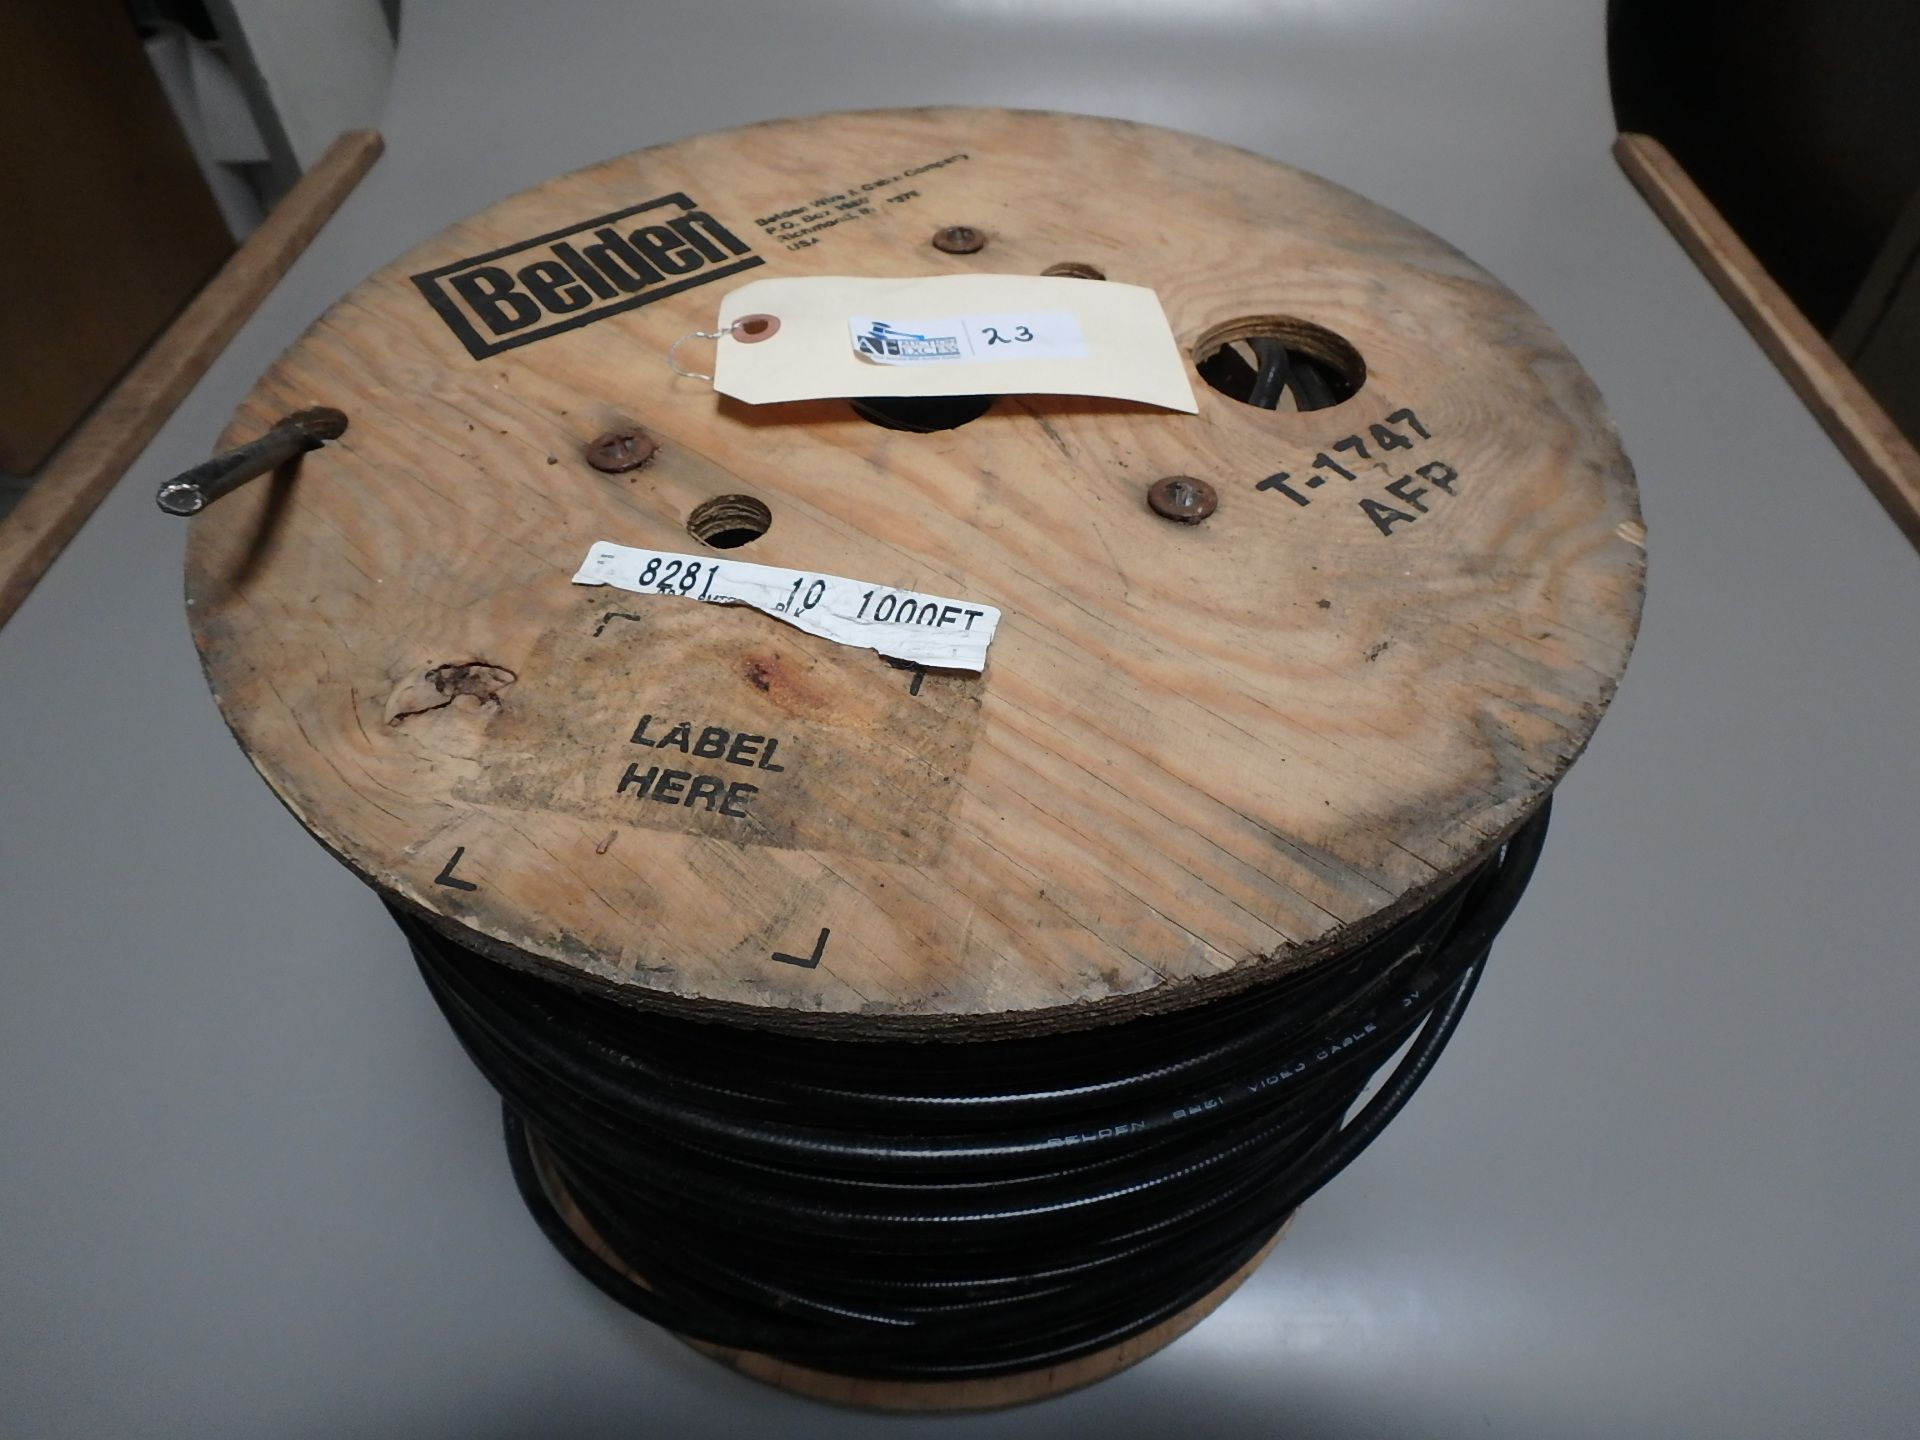 Lot 23 - SPOOL BELDEN